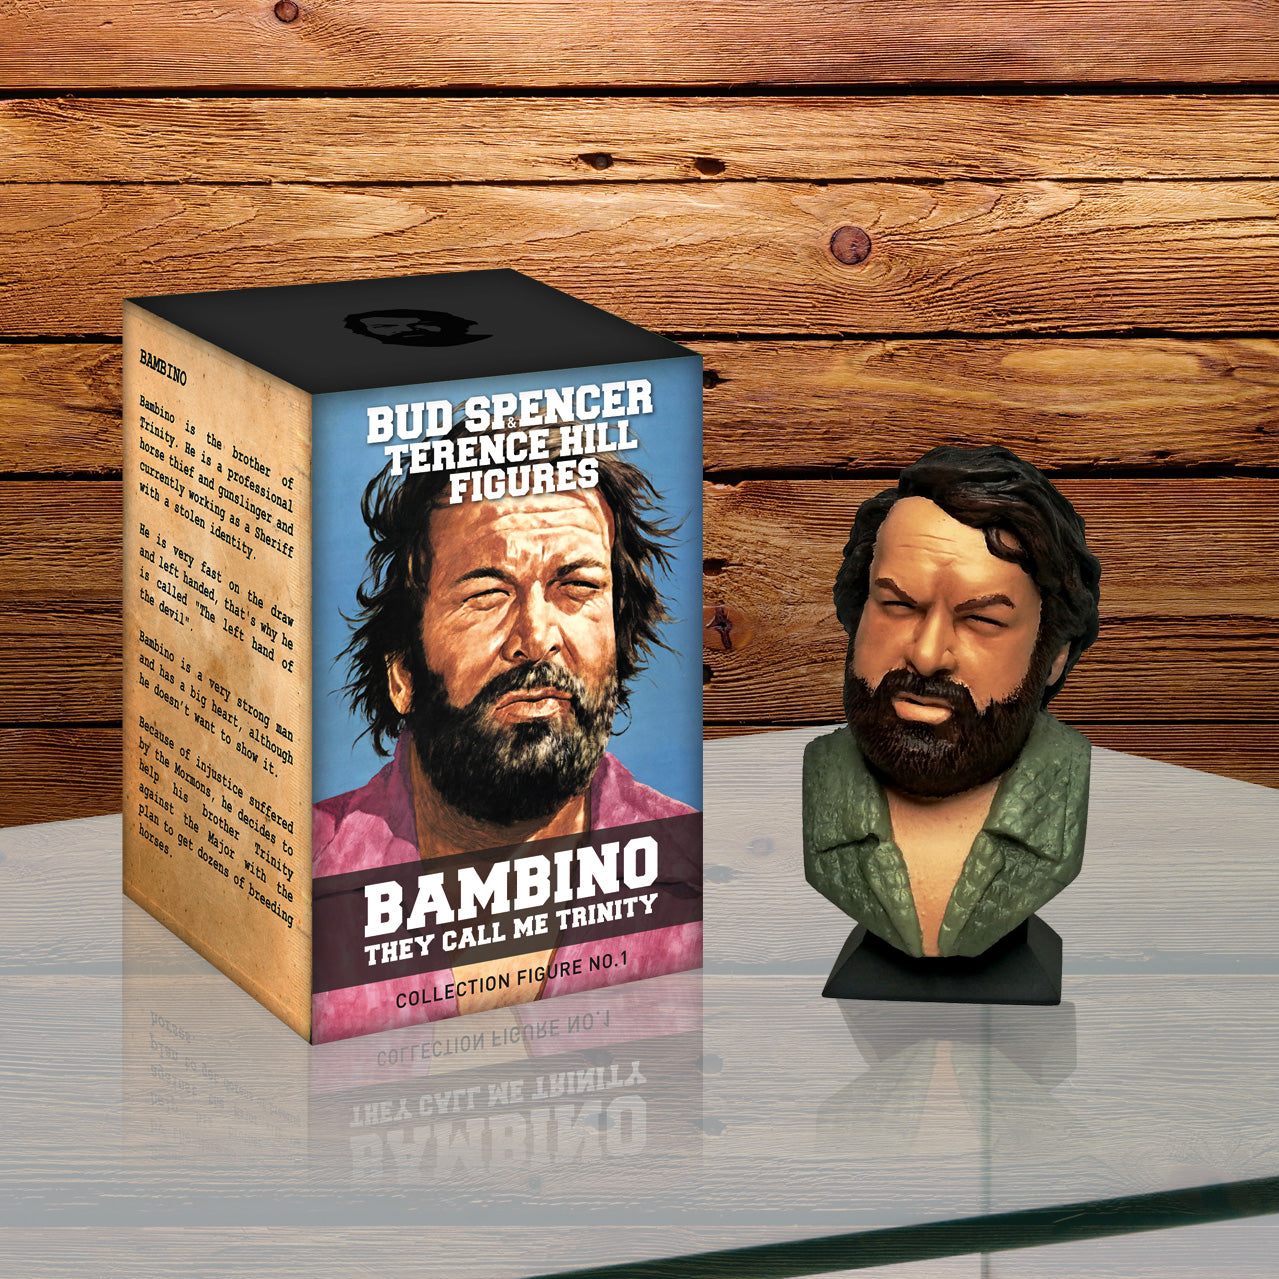 Der Kleine Bud Spencer Terence Hill Figure Collection No1 Bambino